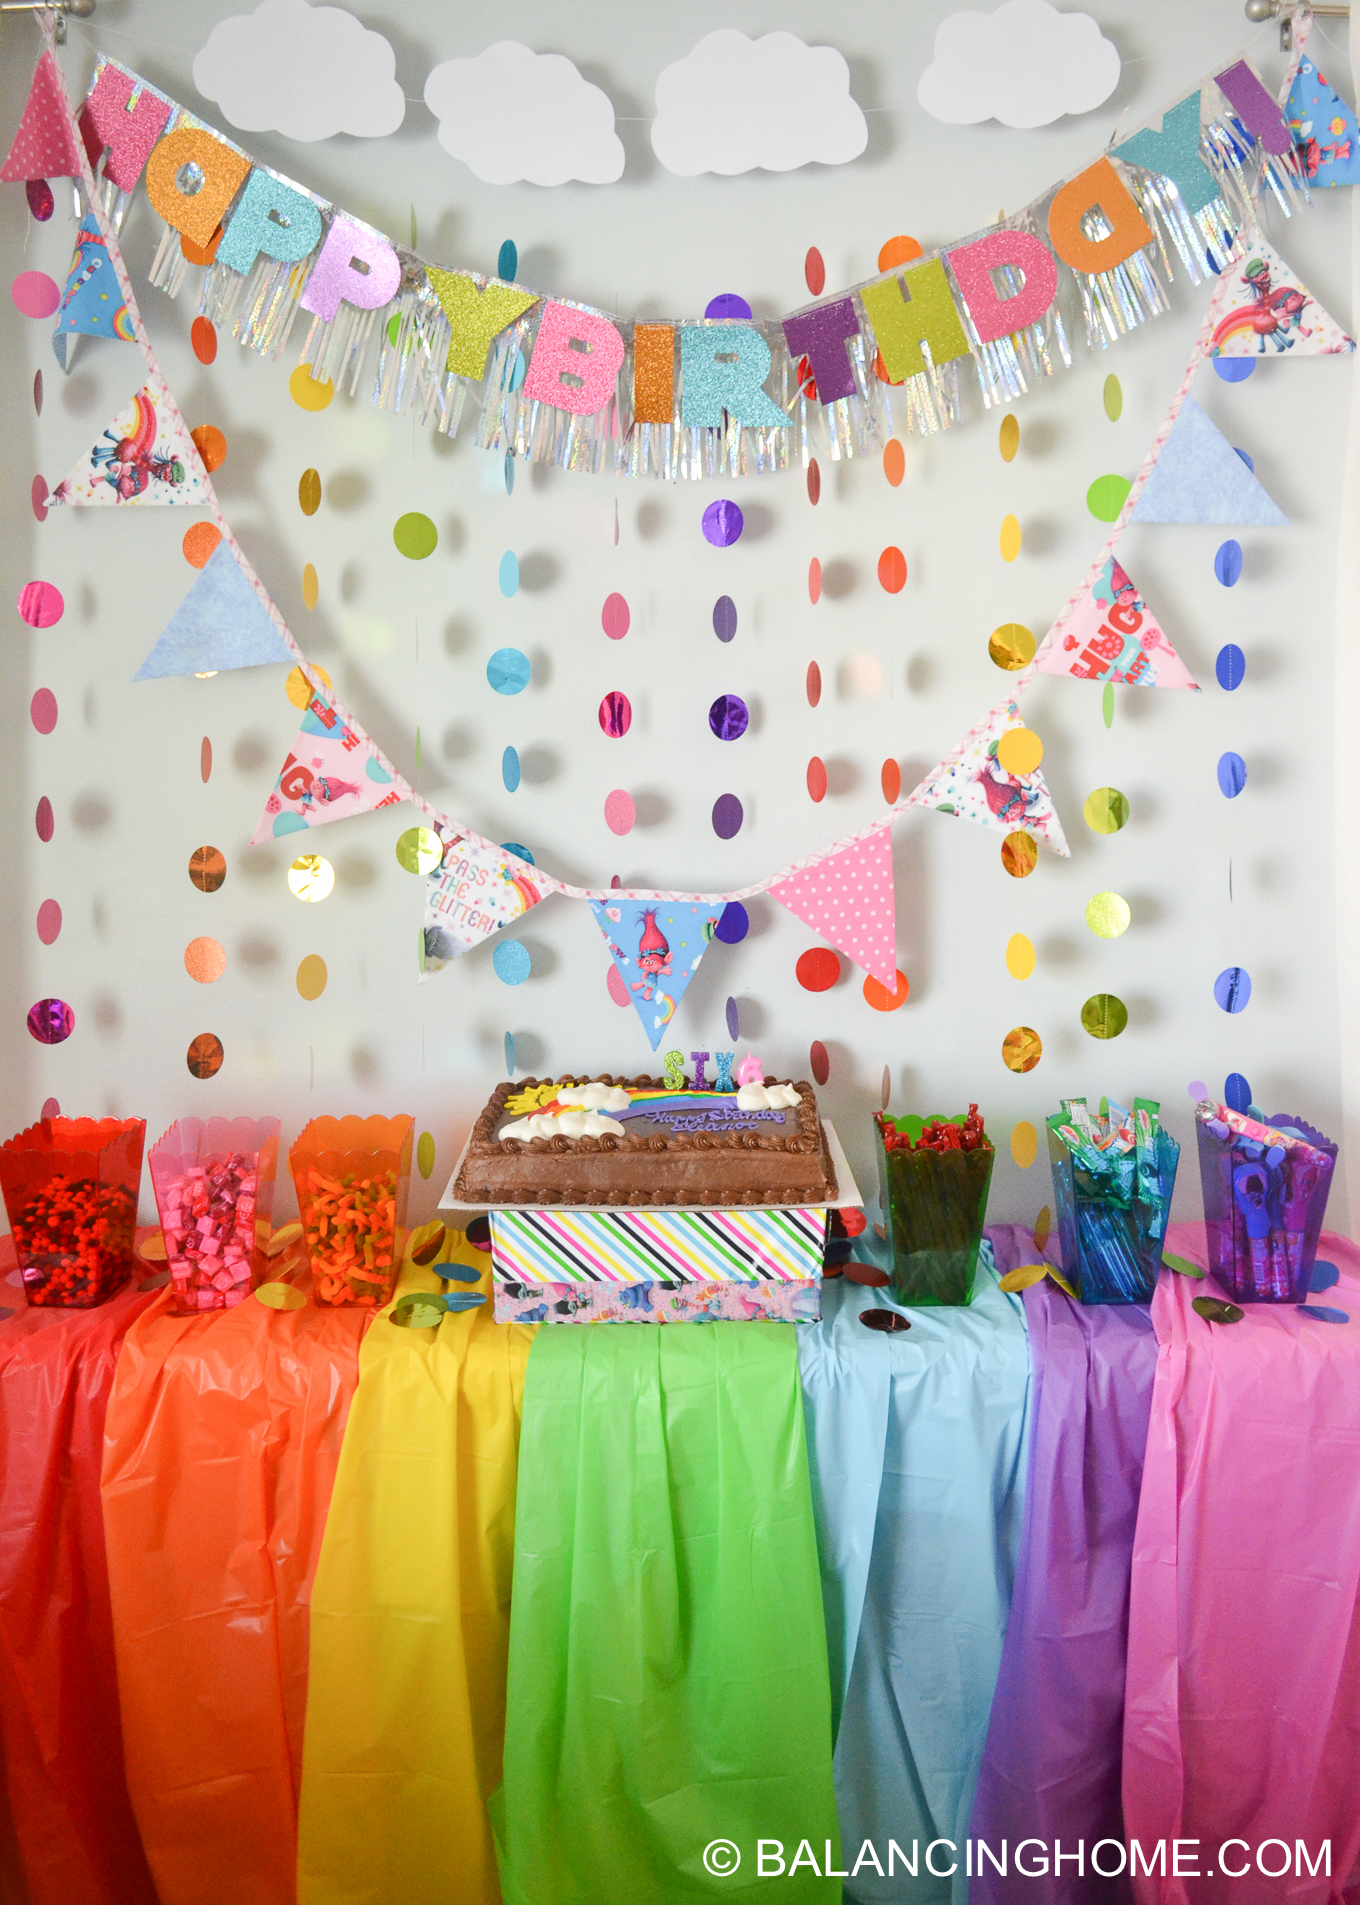 Trolls birthday party decorations